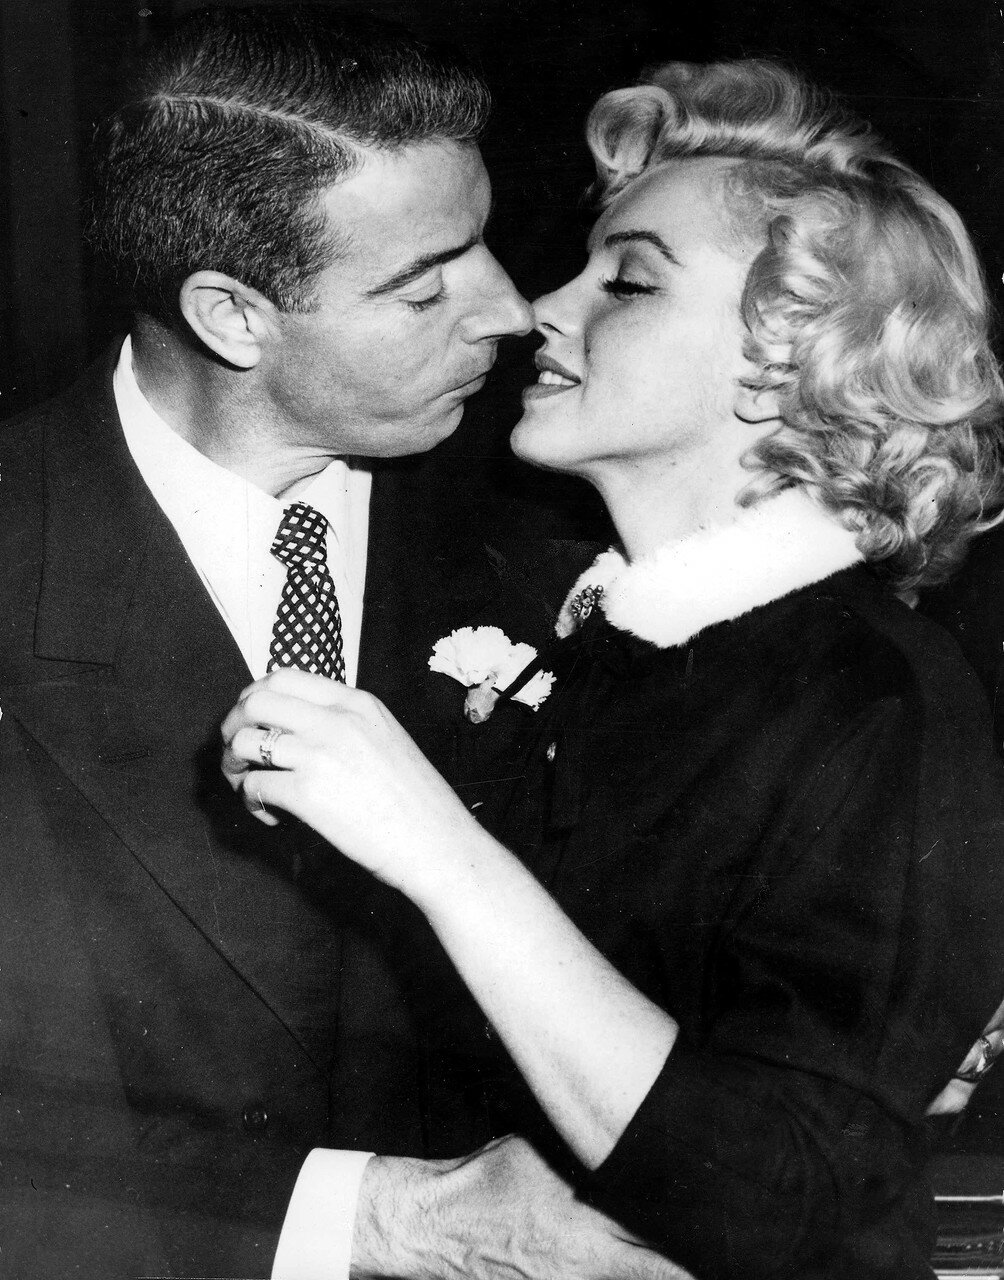 T,V, and Films, 16th January 1954, San Francisco, USA, Legendary Hollywood Film actress Marilyn Monroe prepares to kiss her husband former US Baseball player Joe DiMaggio after their wedding